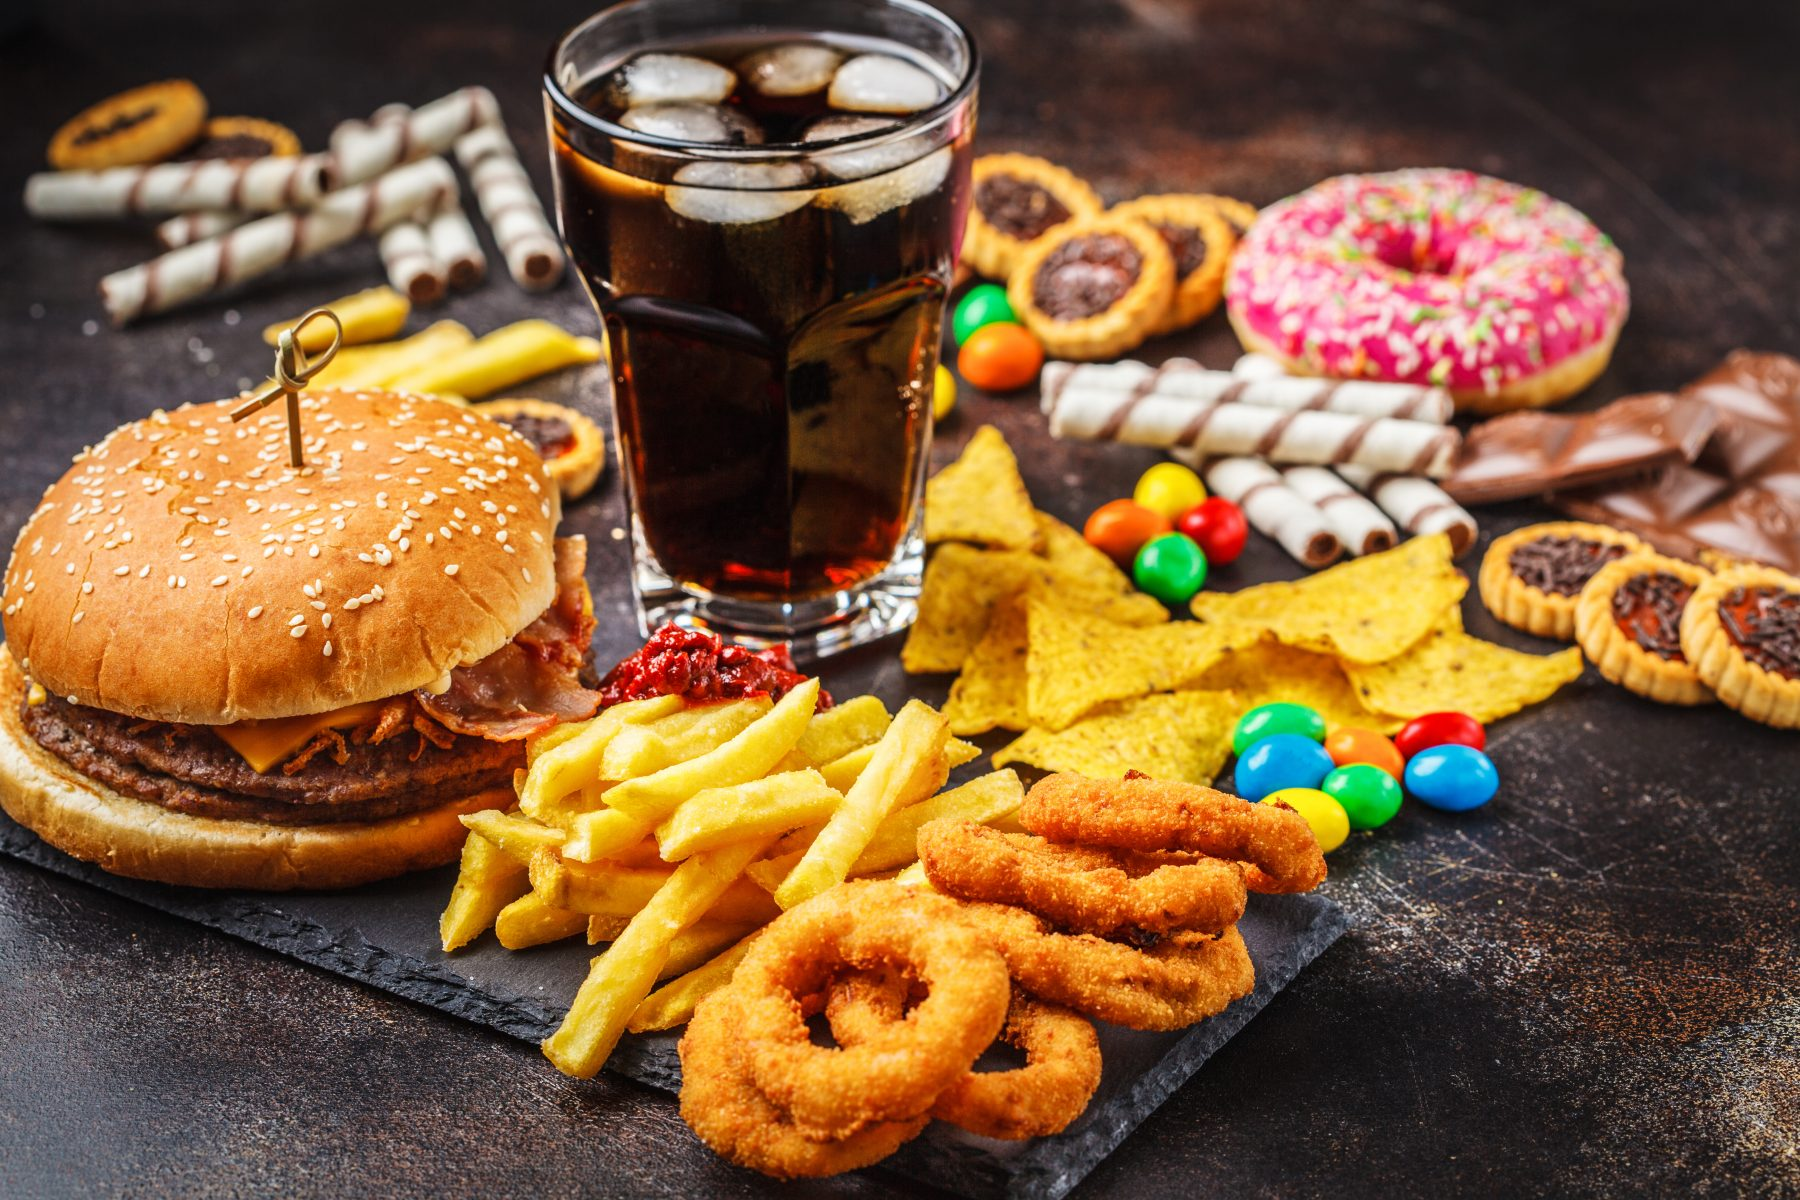 Burger, sweets, chips, chocolate, donuts, soda served on a dark background table